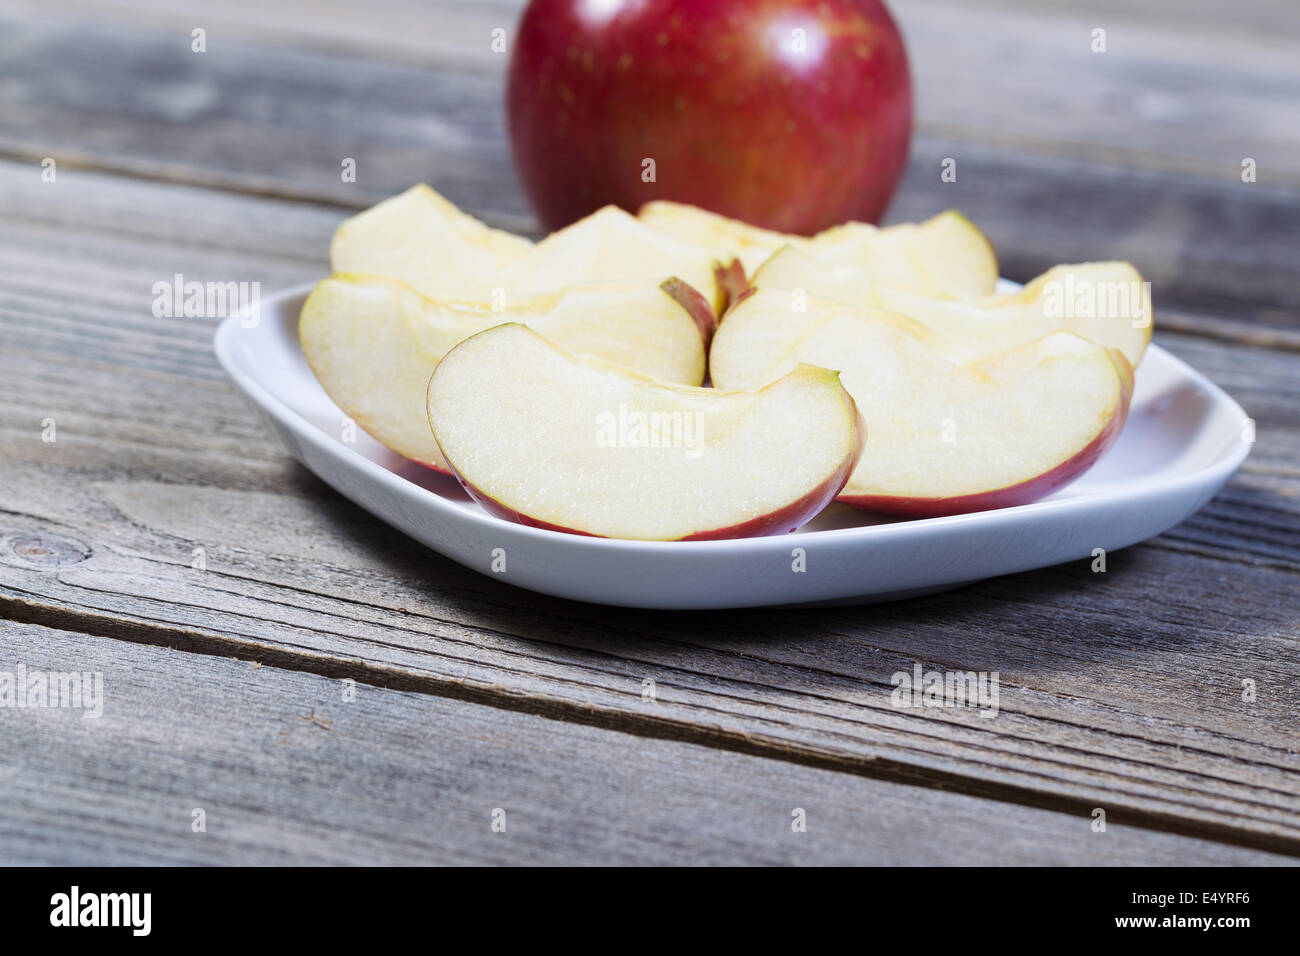 Horizontal photo of fresh apple slices, on white plate, with whole apple and rustic wood in background - Stock Image